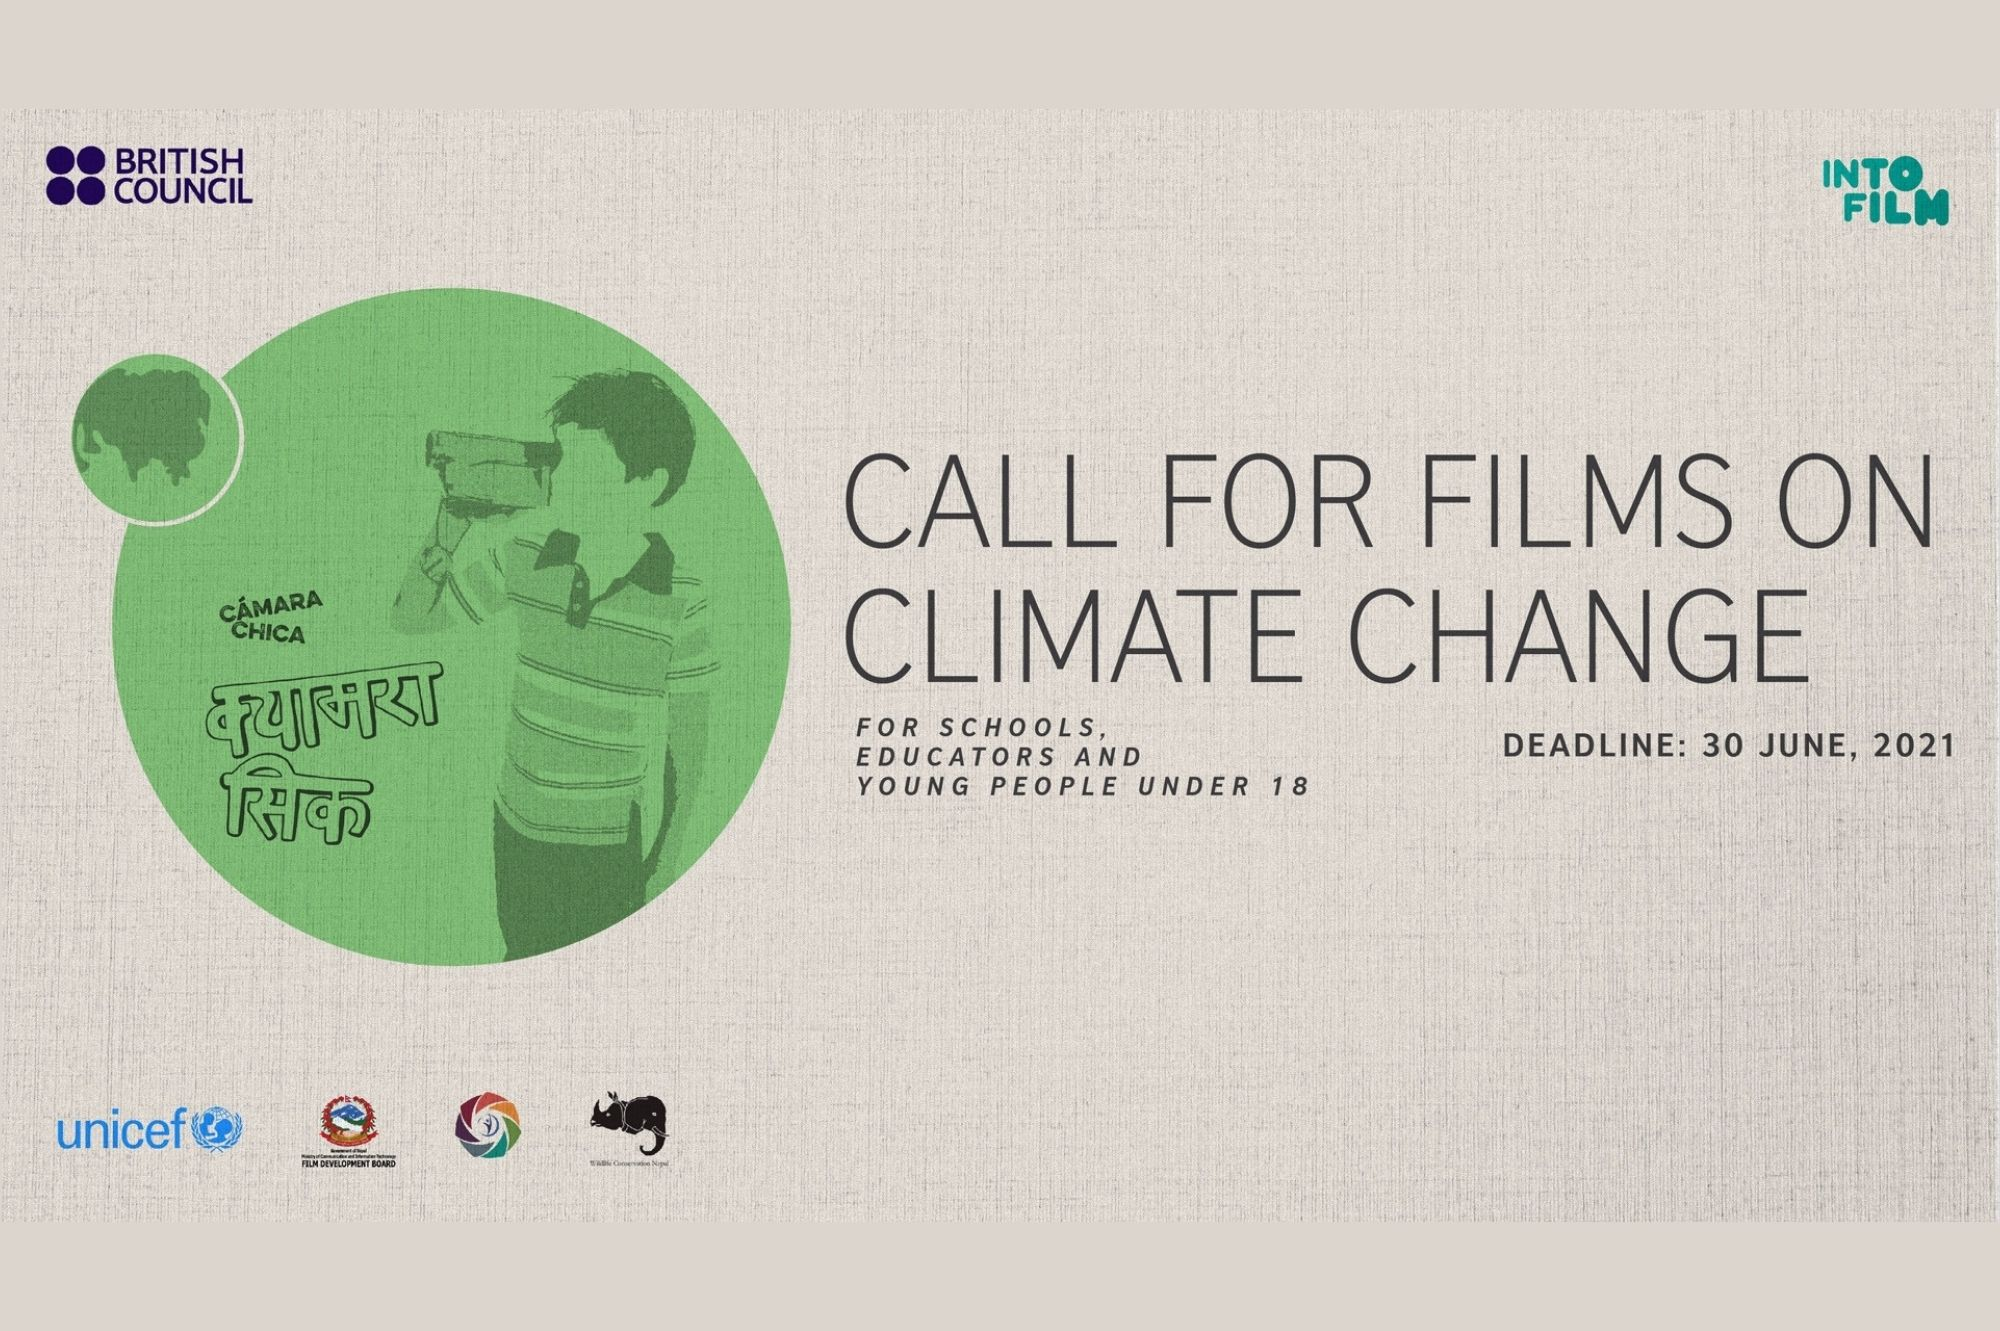 Call for Film on Climate Change